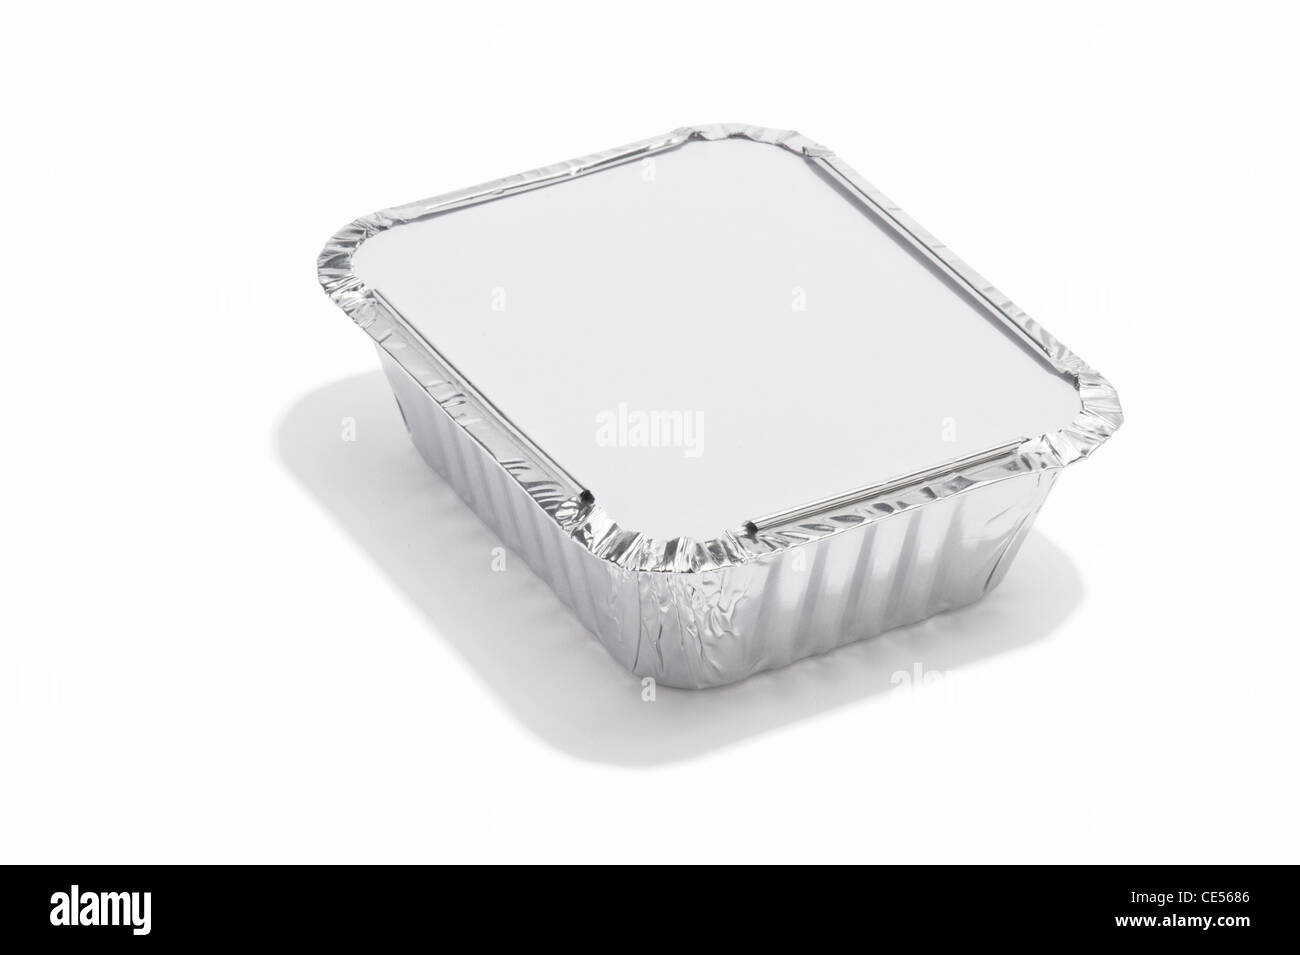 A foil food container - Stock Image